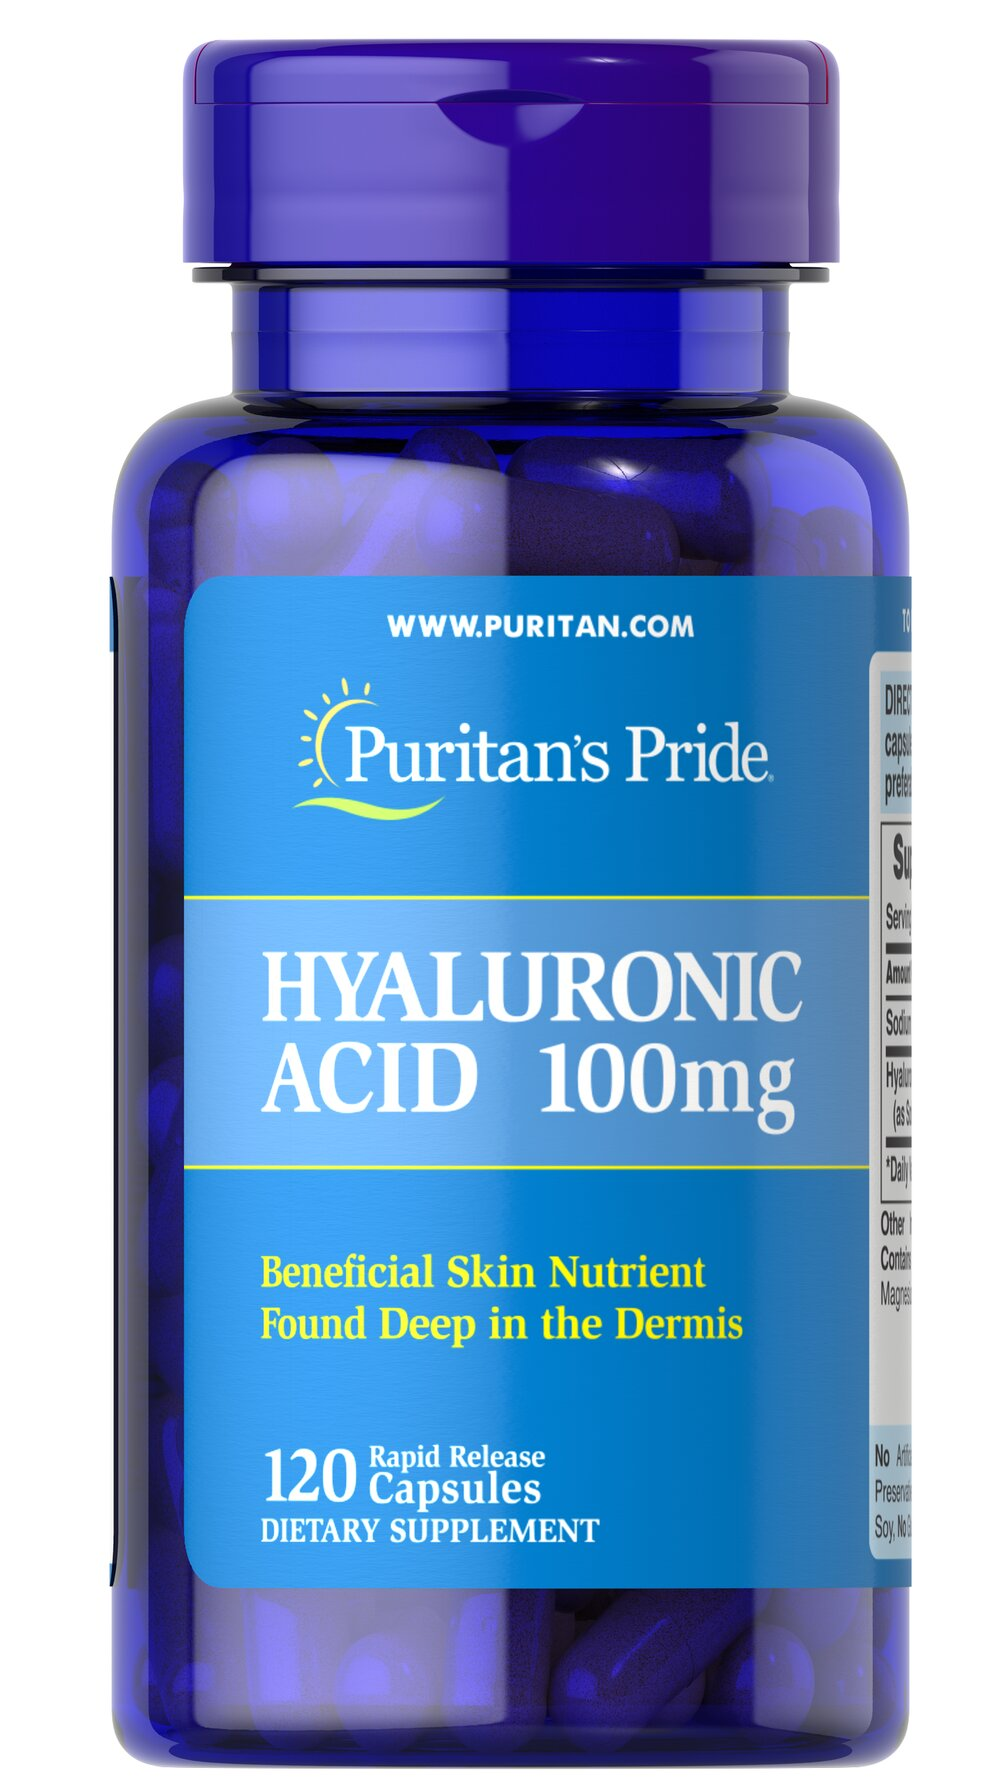 Hyaluronic Acid 100 mg <p>Helps lubricate joints**</p>   <p>Hyaluronic Acid is a polysaccharide found in almost all adult connective tissue, including joints, ligaments, tendons and skin.** Just one Hyaluronic Acid capsule a day can help maintain the fluid between your joints, providing the cushioning and lubrication necessary for easy movement.**</p> 120 Capsules 100 mg $99.99